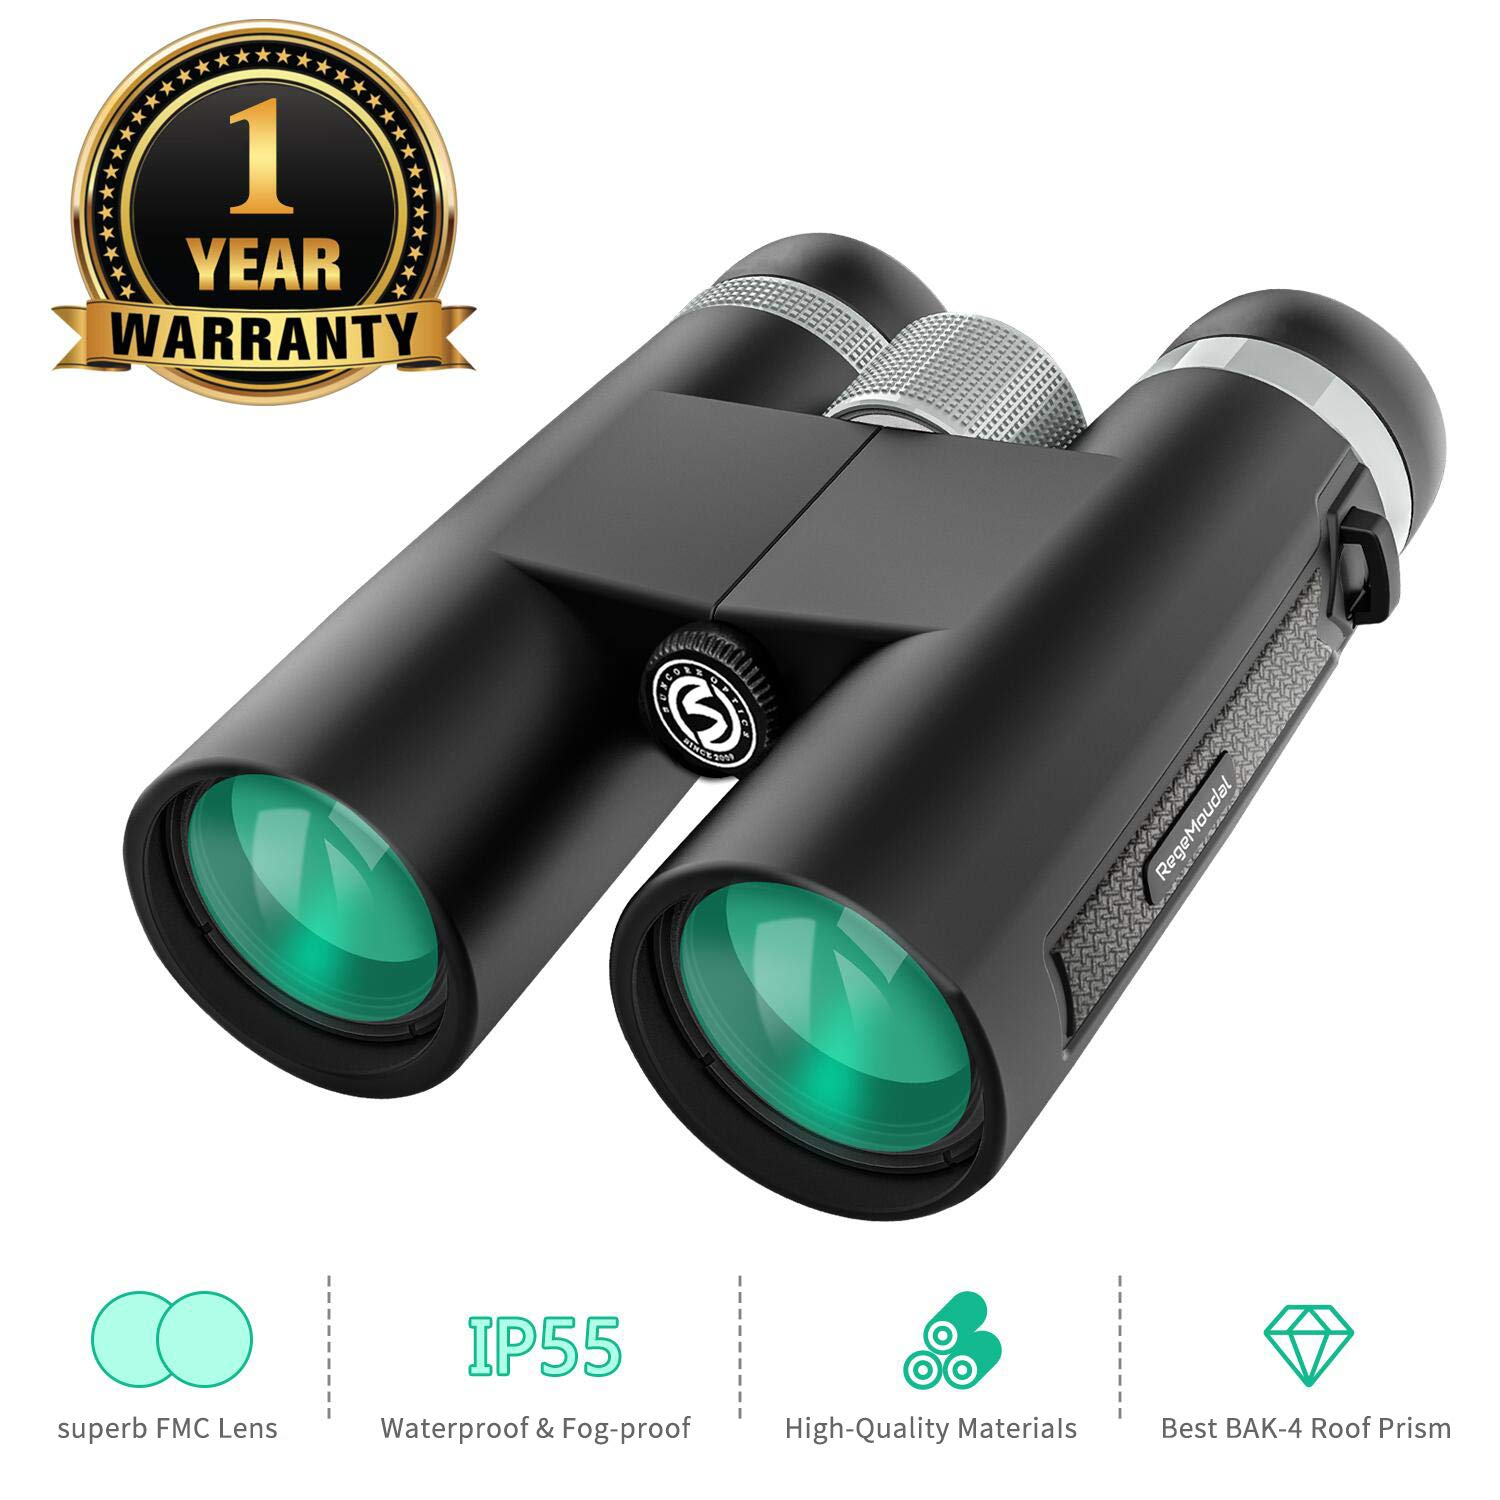 RegeMoudal 12x42 HD Binoculars for Adults, Waterproof Compact Binoculars with Clear Weak Light Vision, Suitable for Bird Watching Hunting Traveling - Prism Bak4 FMC Lens with Smartphone Adapter by RegeMoudal